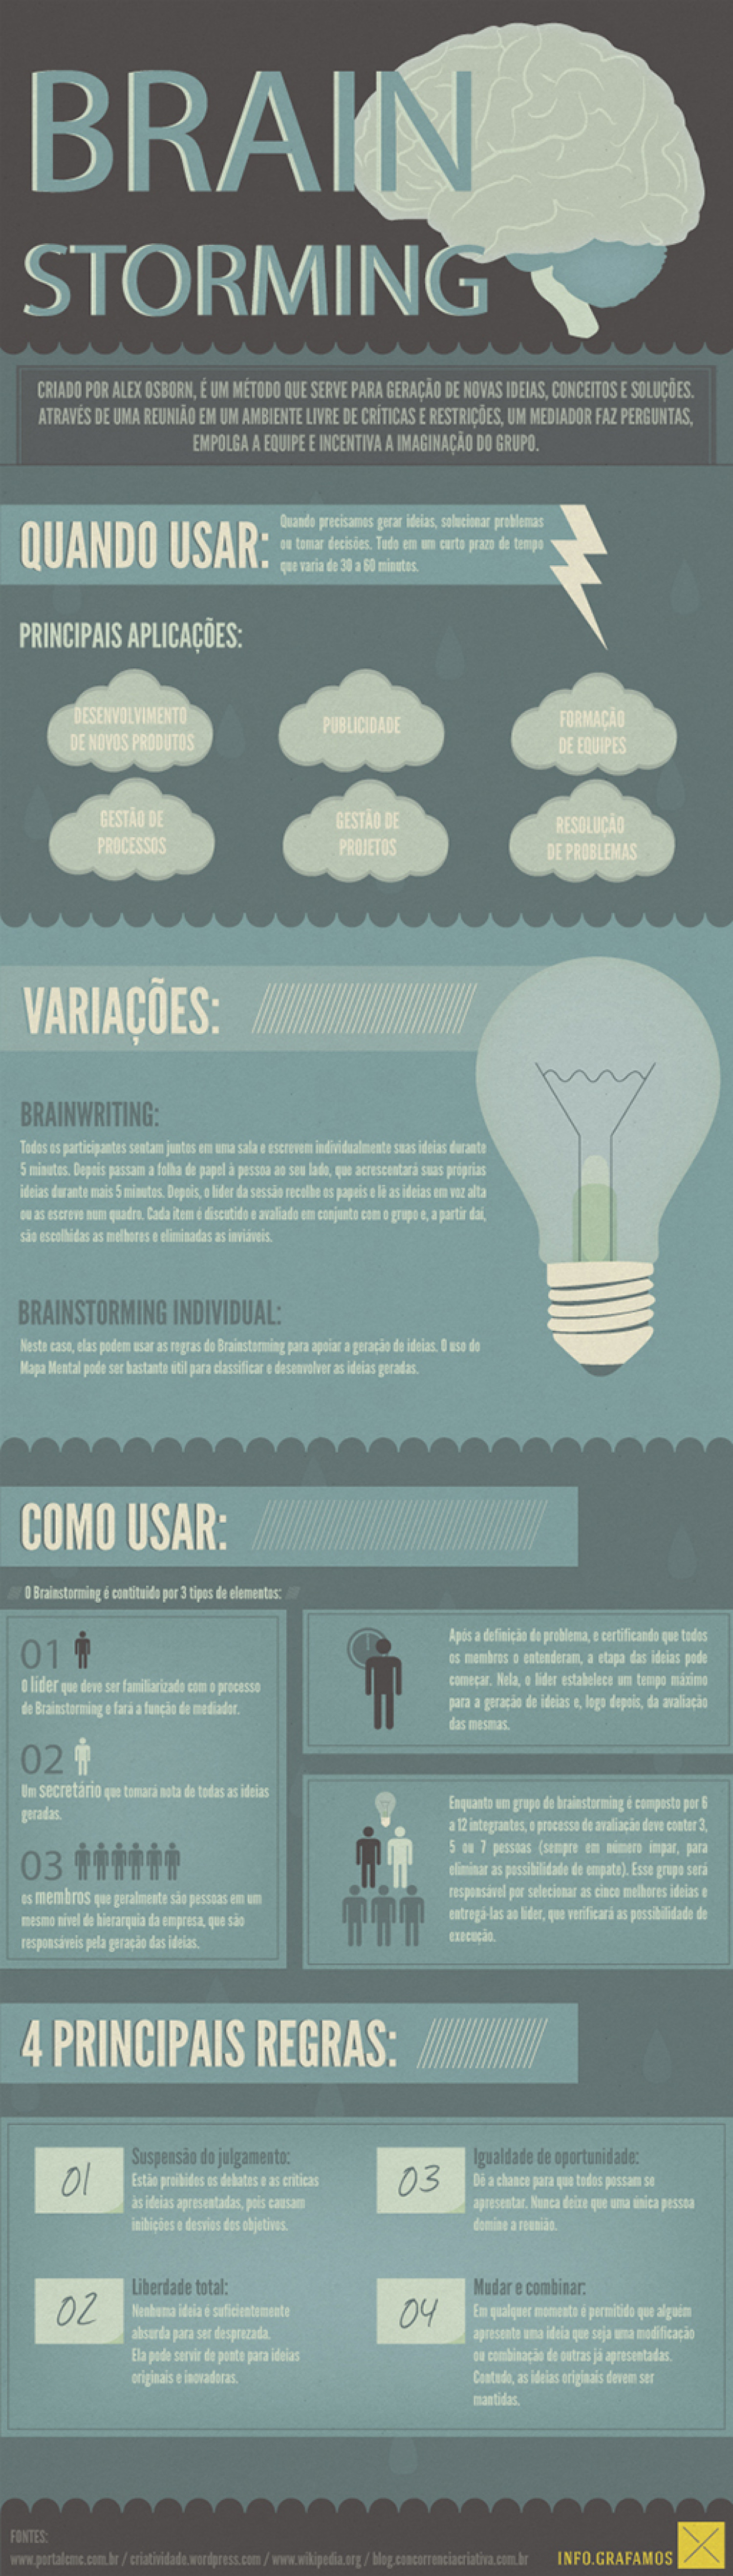 Brainstorming Infographic